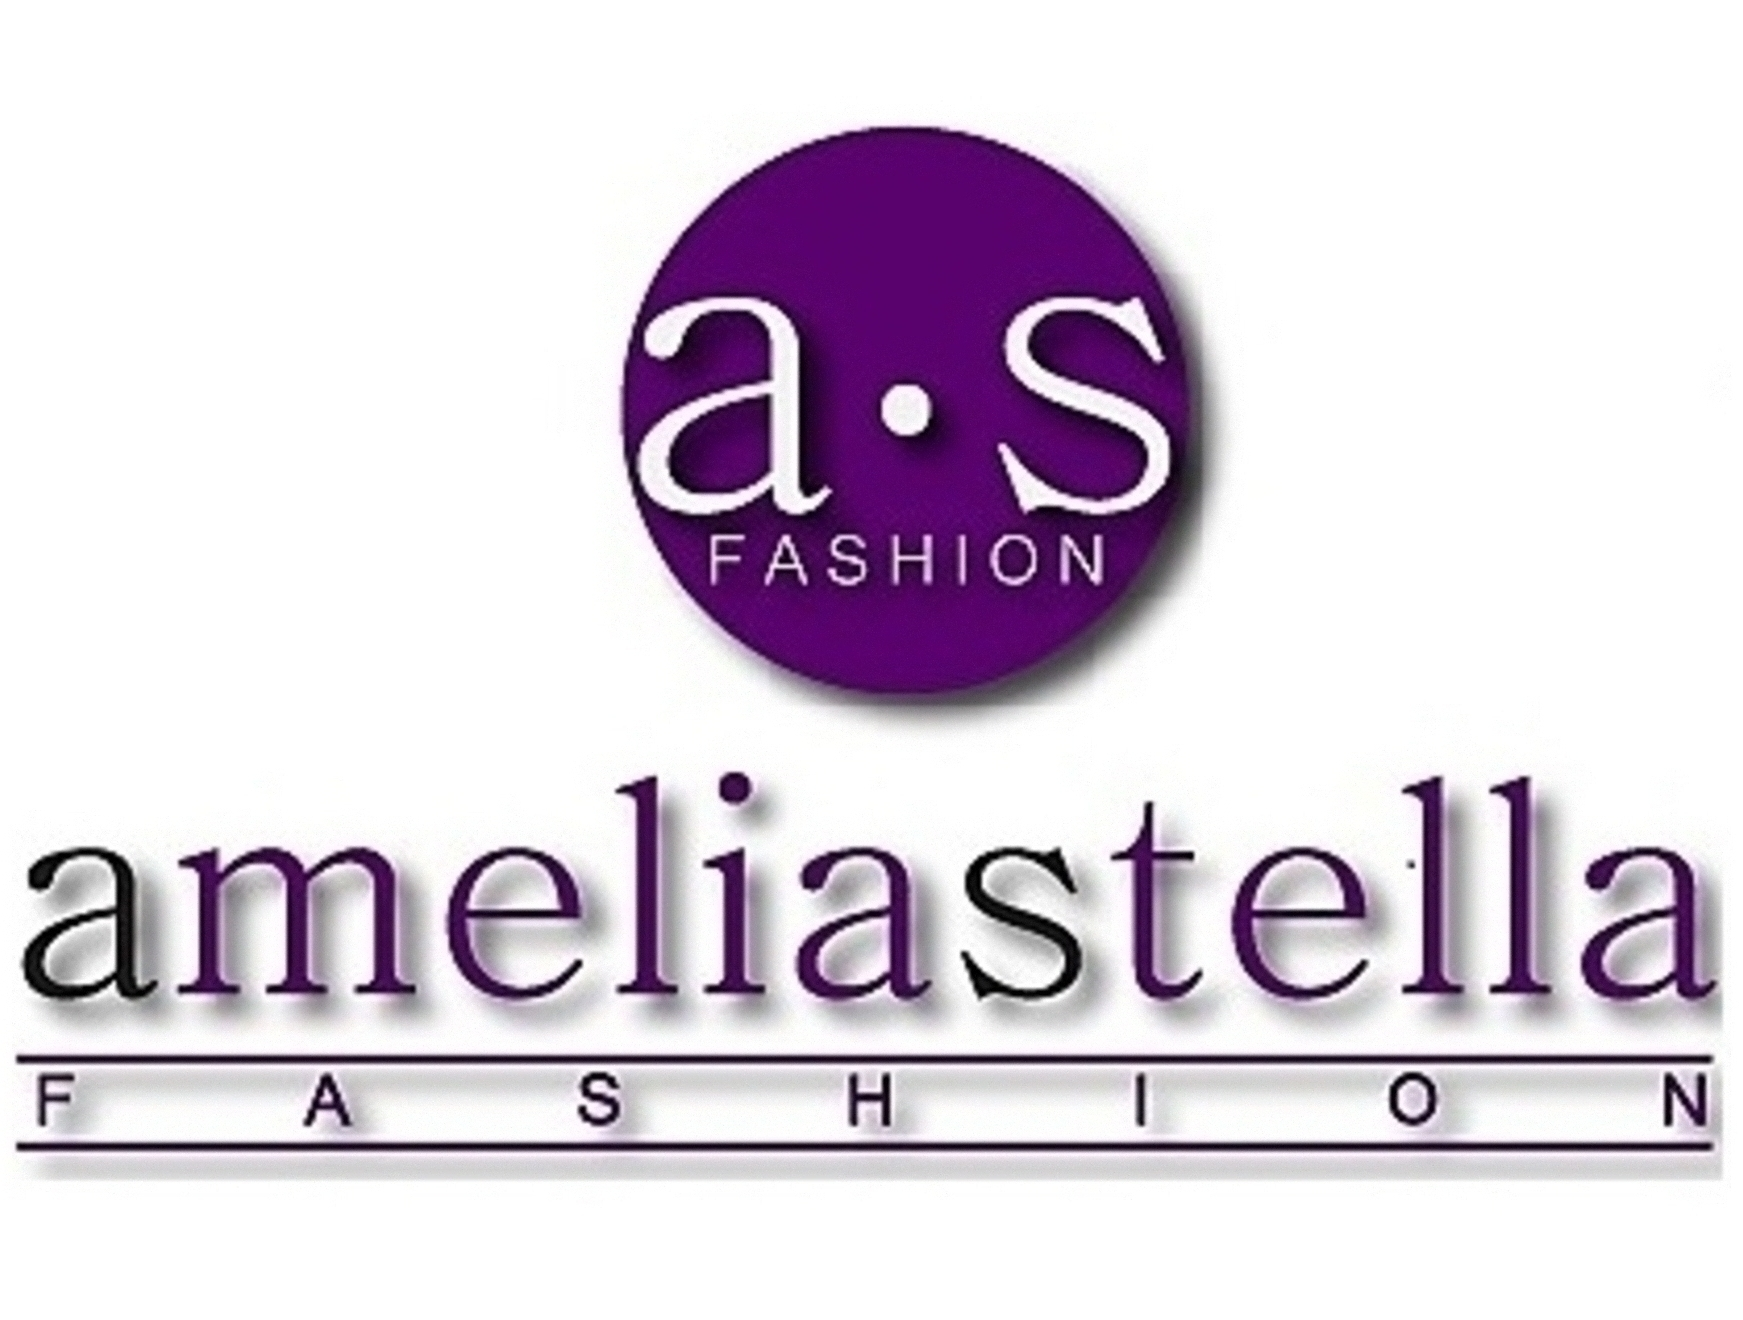 AMELIASTELLA FASHION